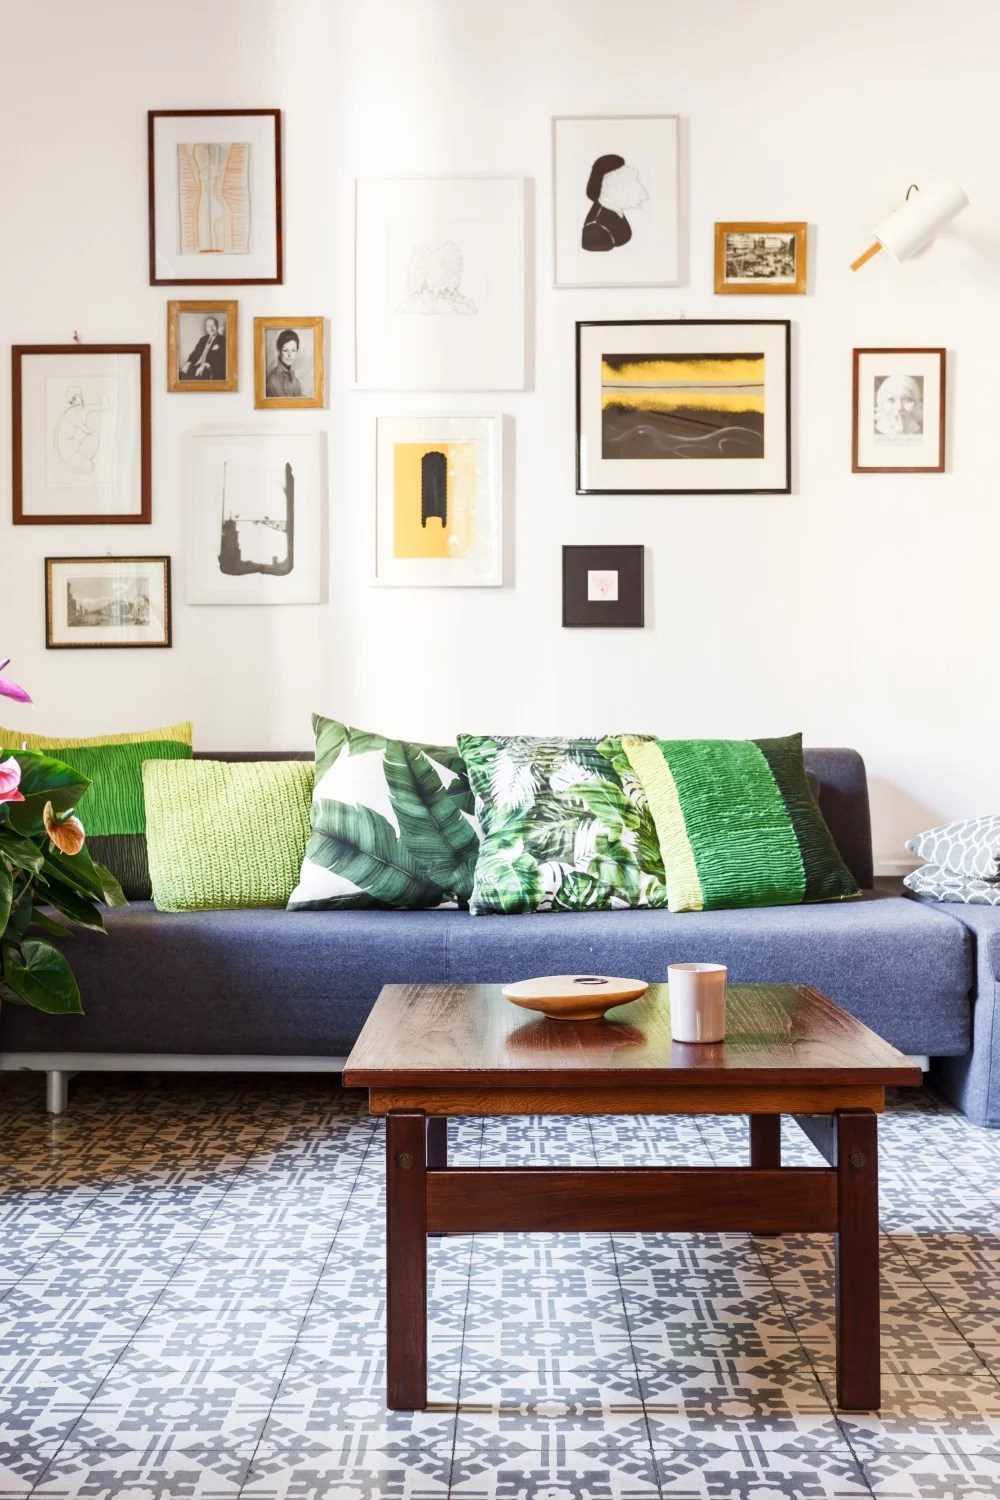 5 Design Trends Youre About To See Everywhere Says Airbnb